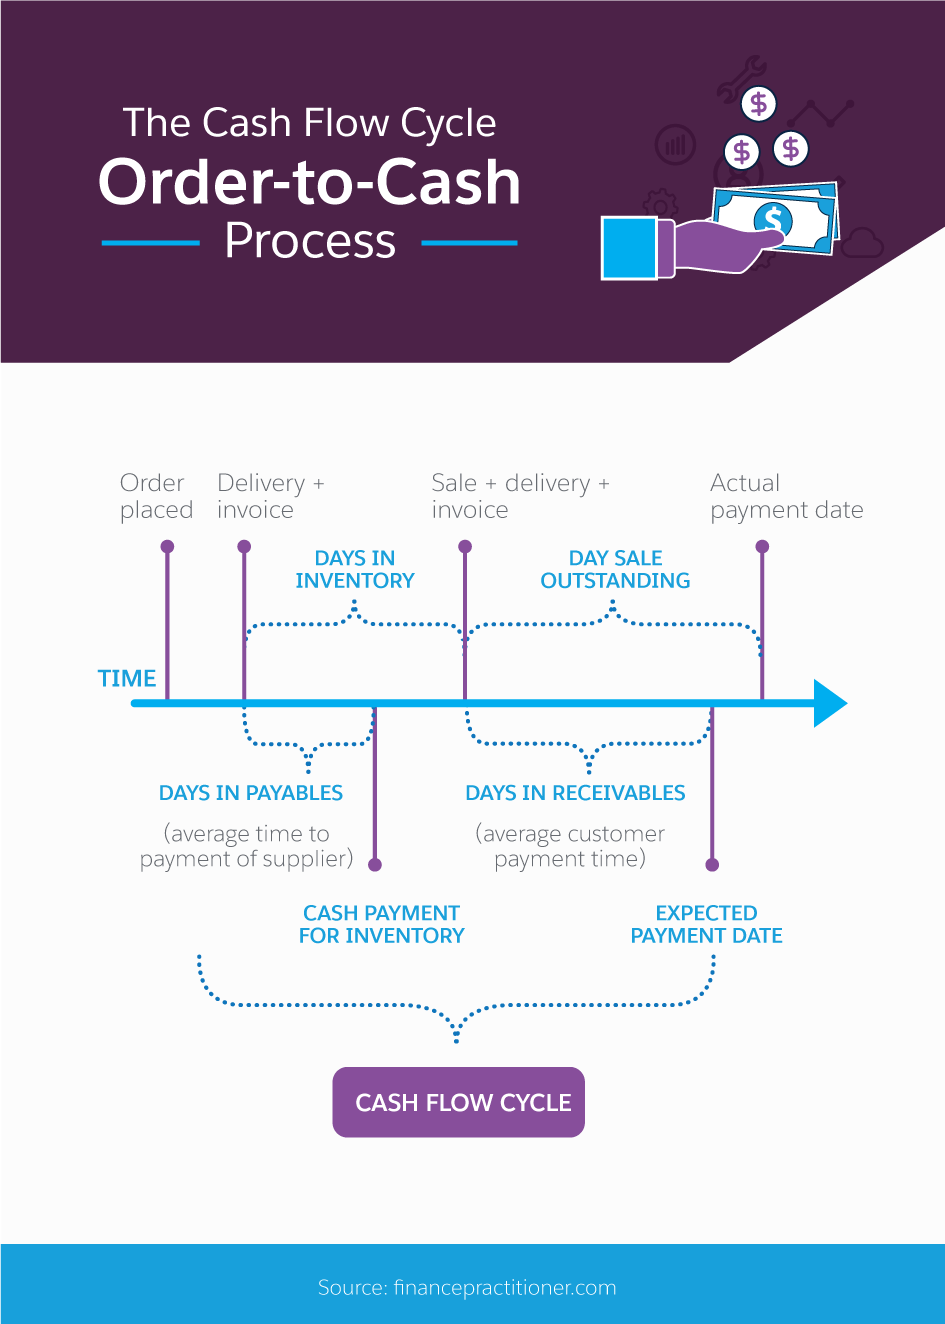 Cash Flows Via Multiple Channels To >> What You Should Know About The Order To Cash Process Salesforce Com